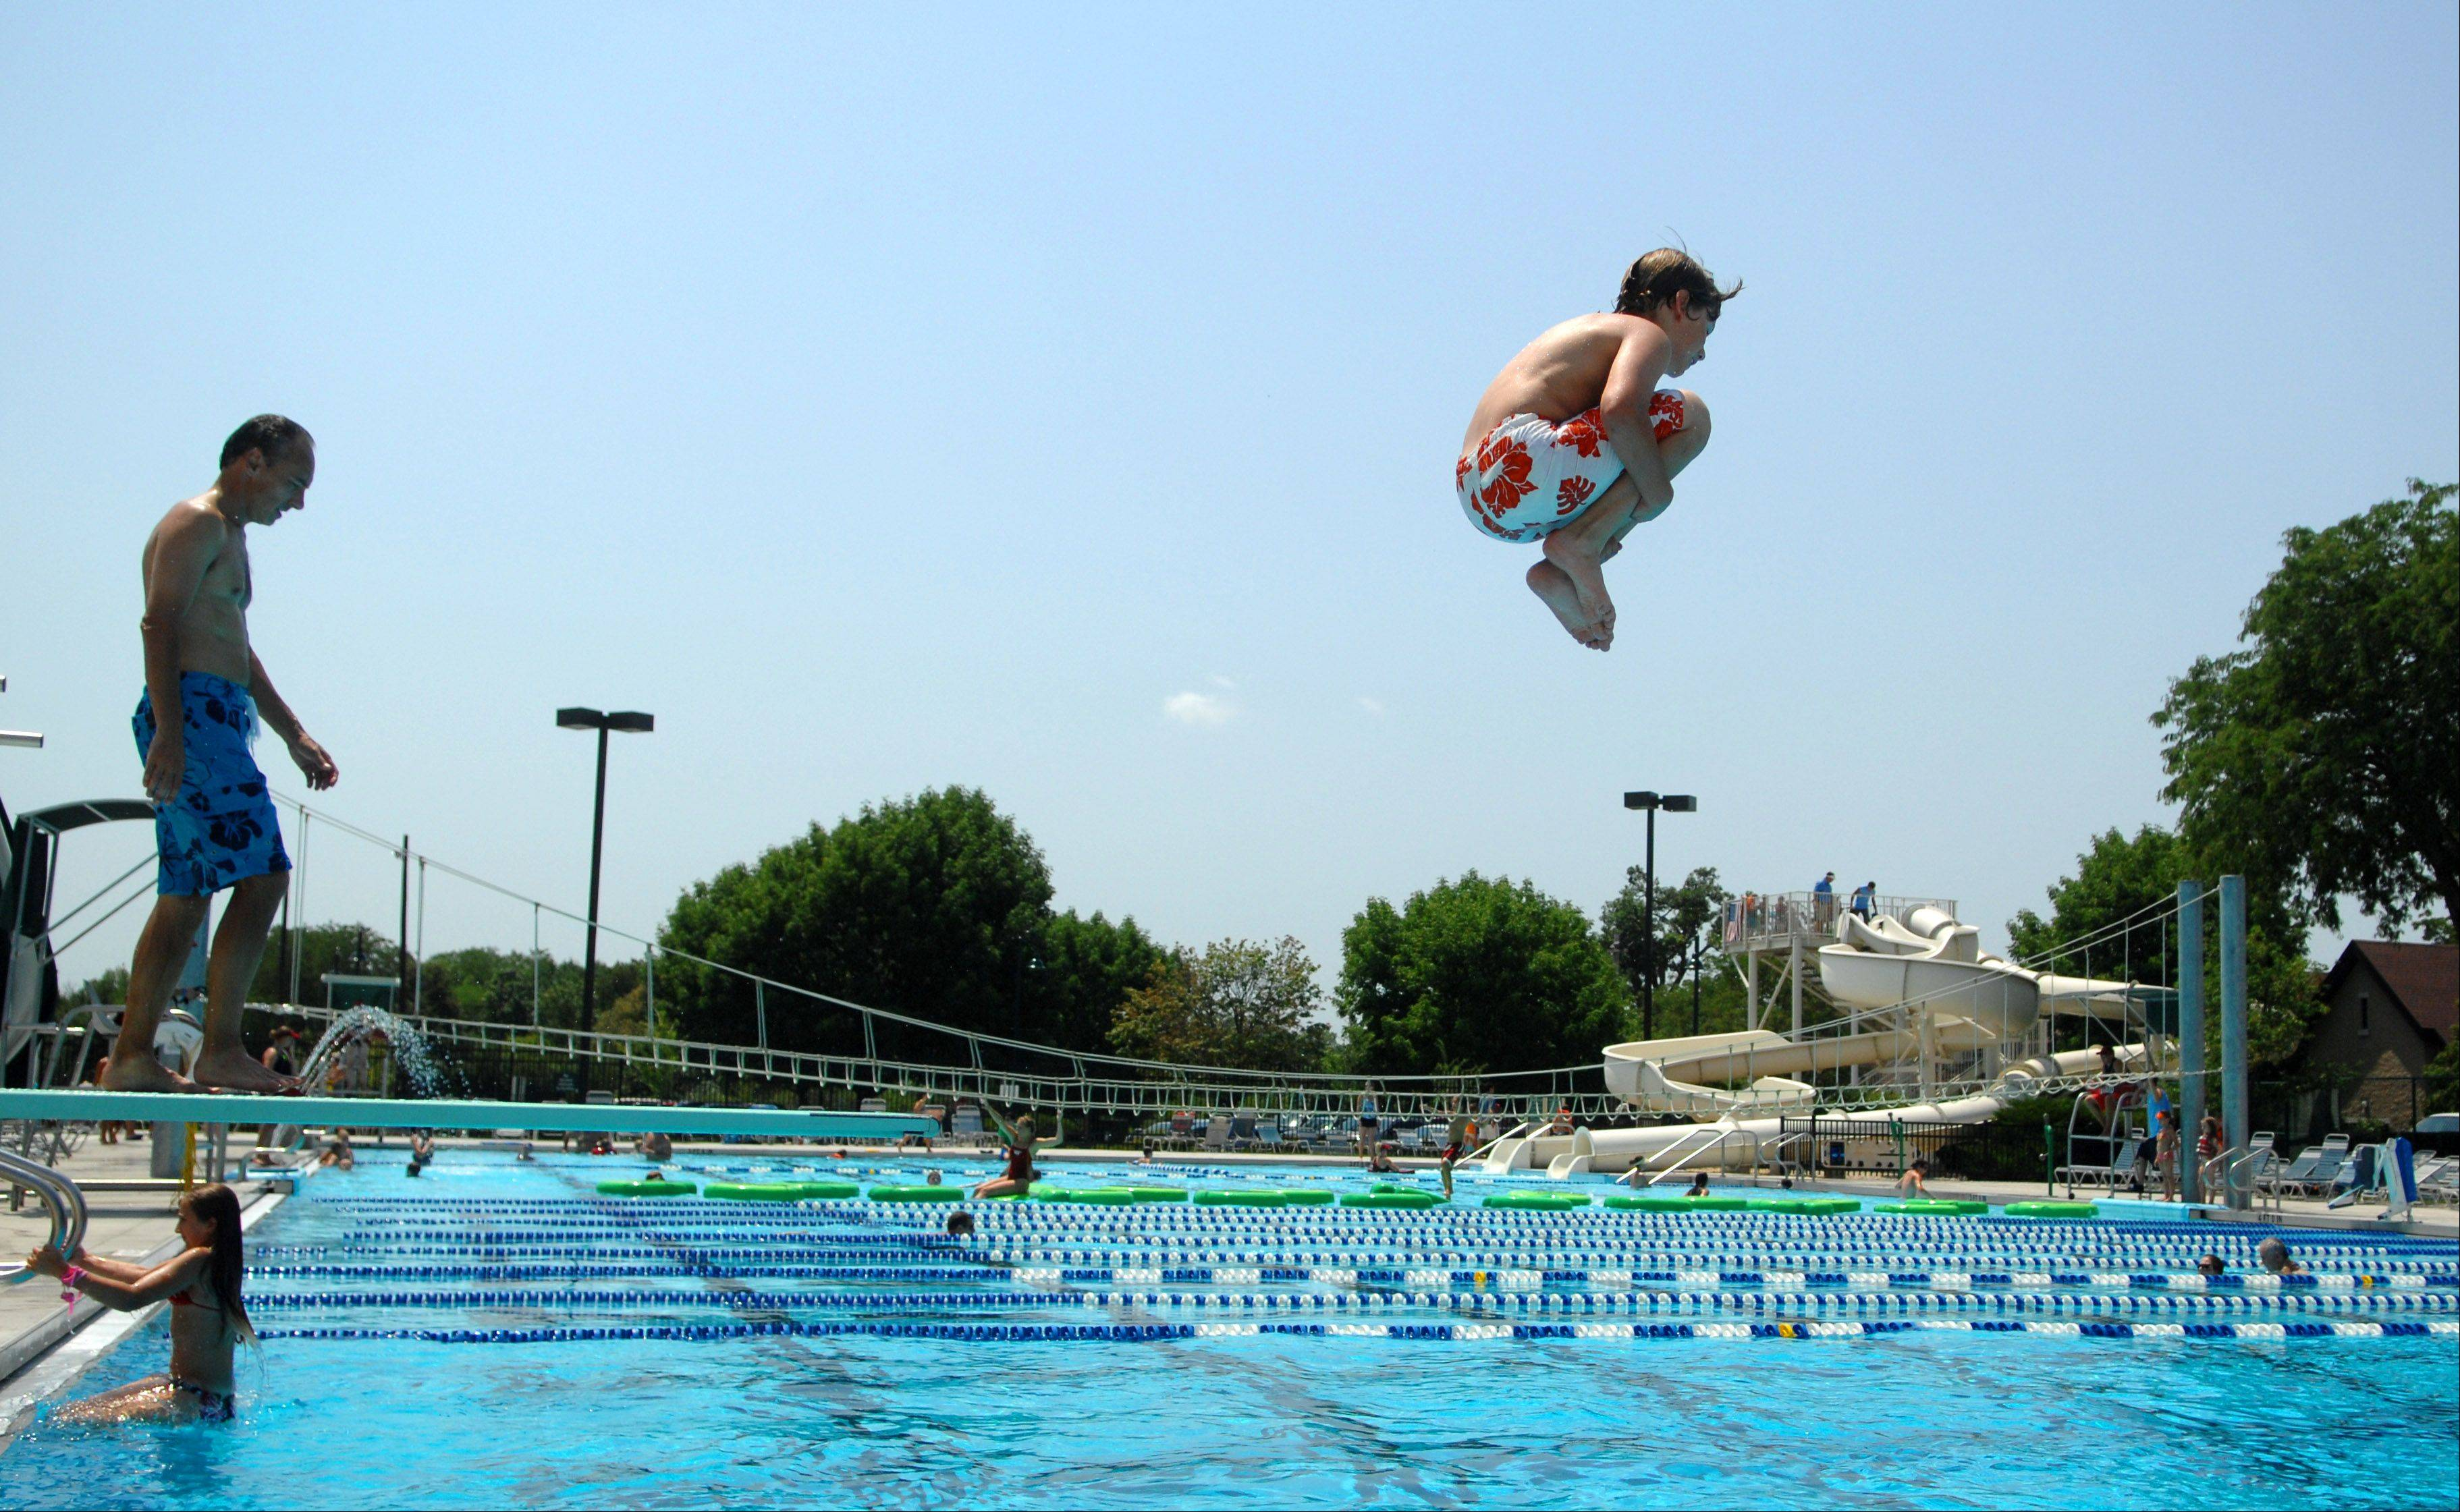 Connor Reece, 11, of St. Charles does a cannonball into Swanson Pool at Pottawatomie Park in St. Charles Friday. The pool had a line to get in when they opened for public swimming at noon.